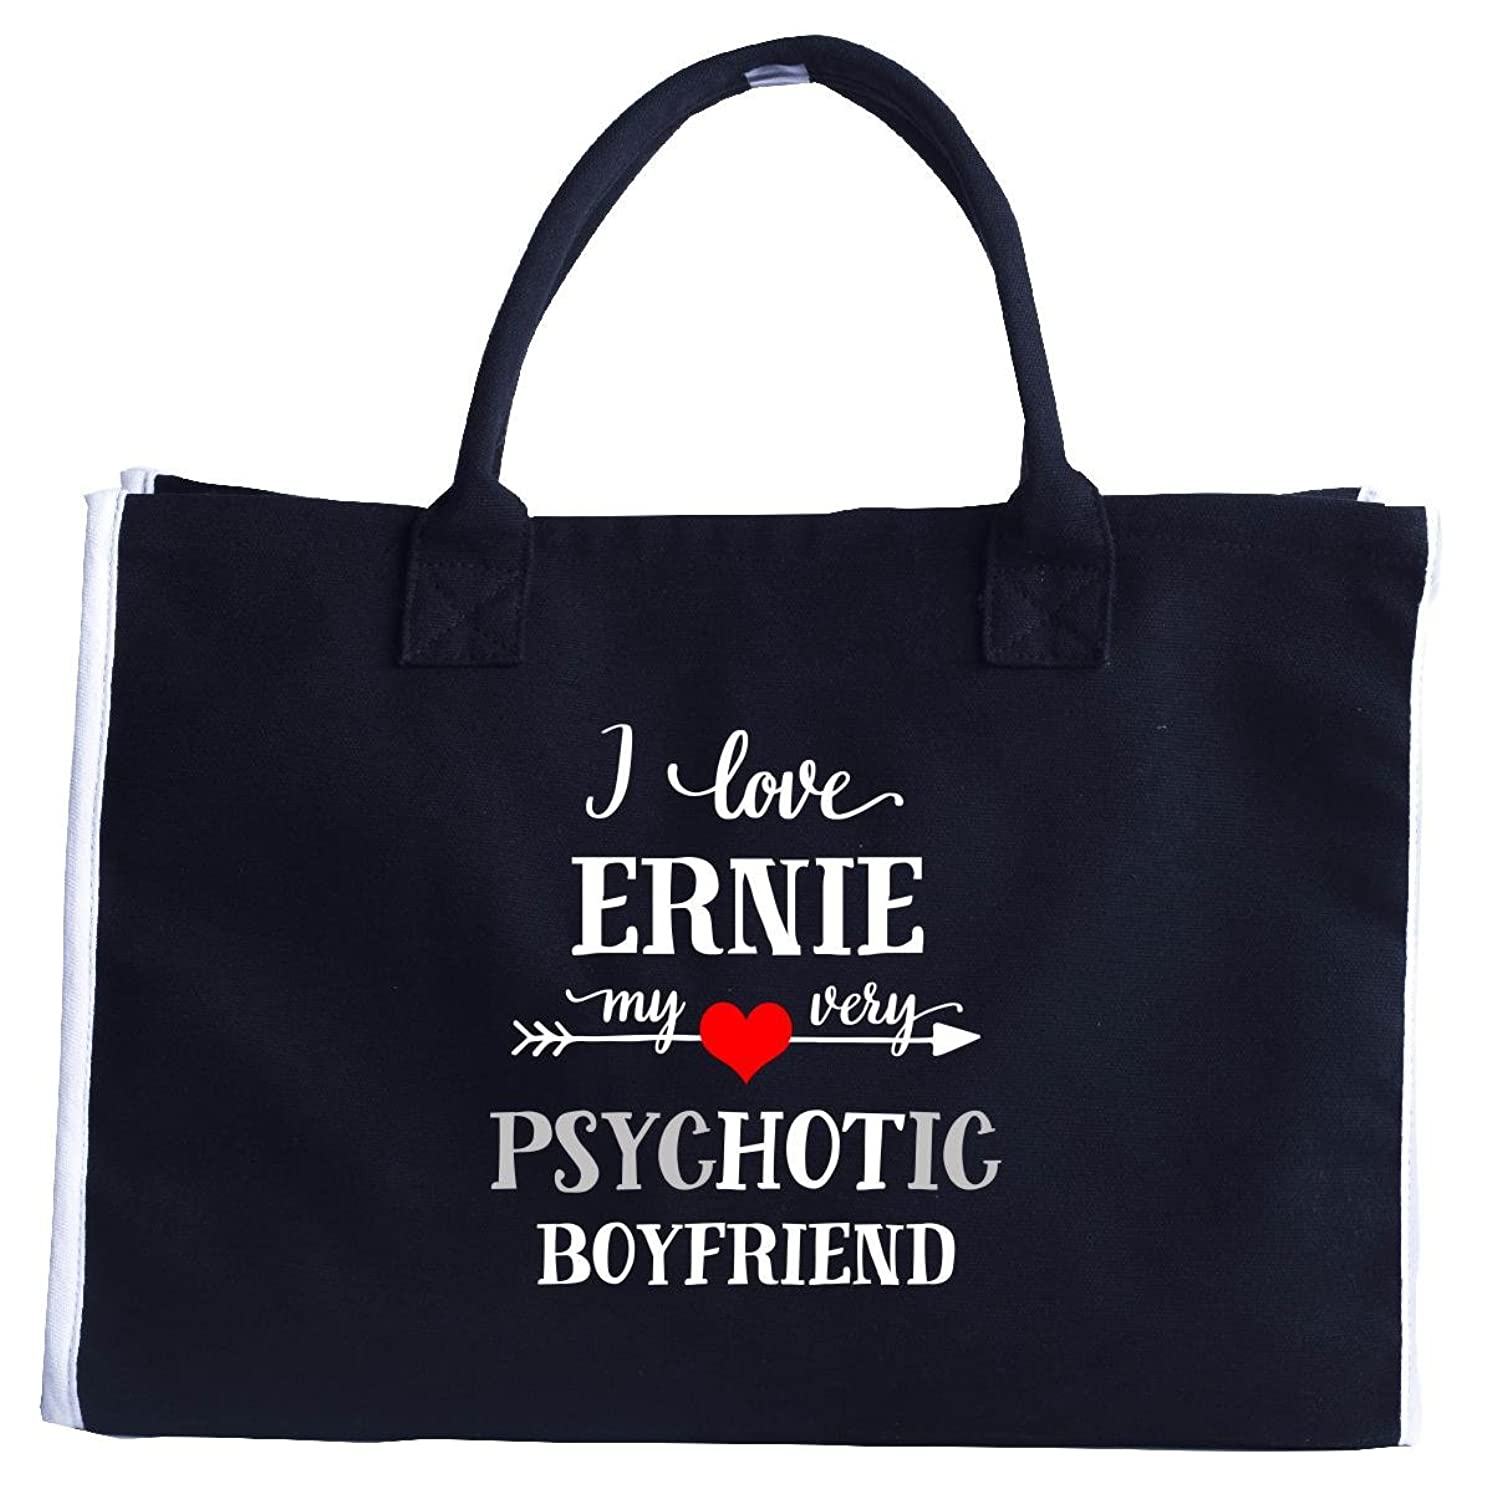 I Love Ernie My Very Psychotic Boyfriend. Gift For Her - Fashion Tote Bag